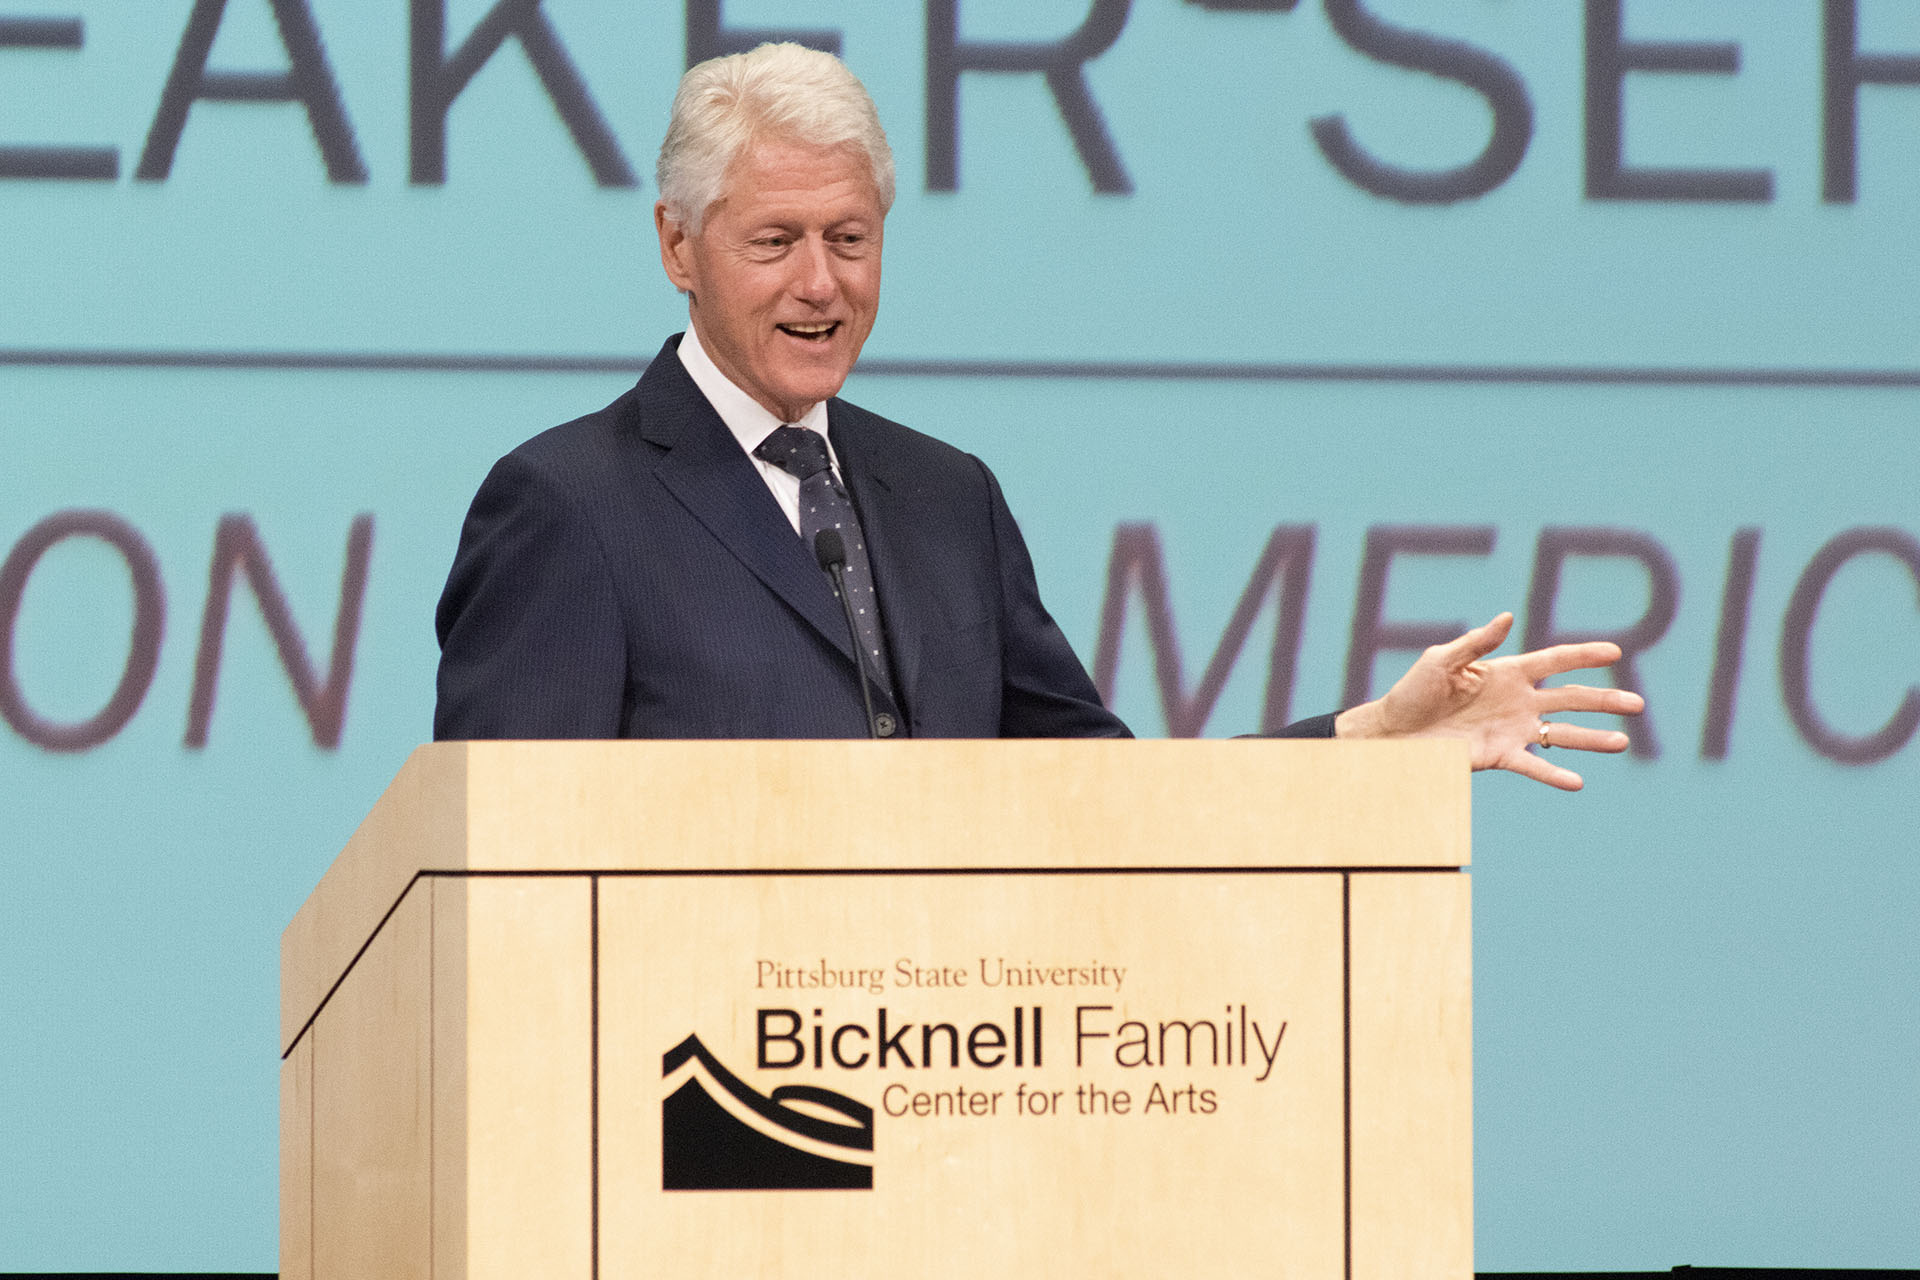 president-bill-clinton---lee-scott-lecture-series-bfcfta-1506-copy.jpg